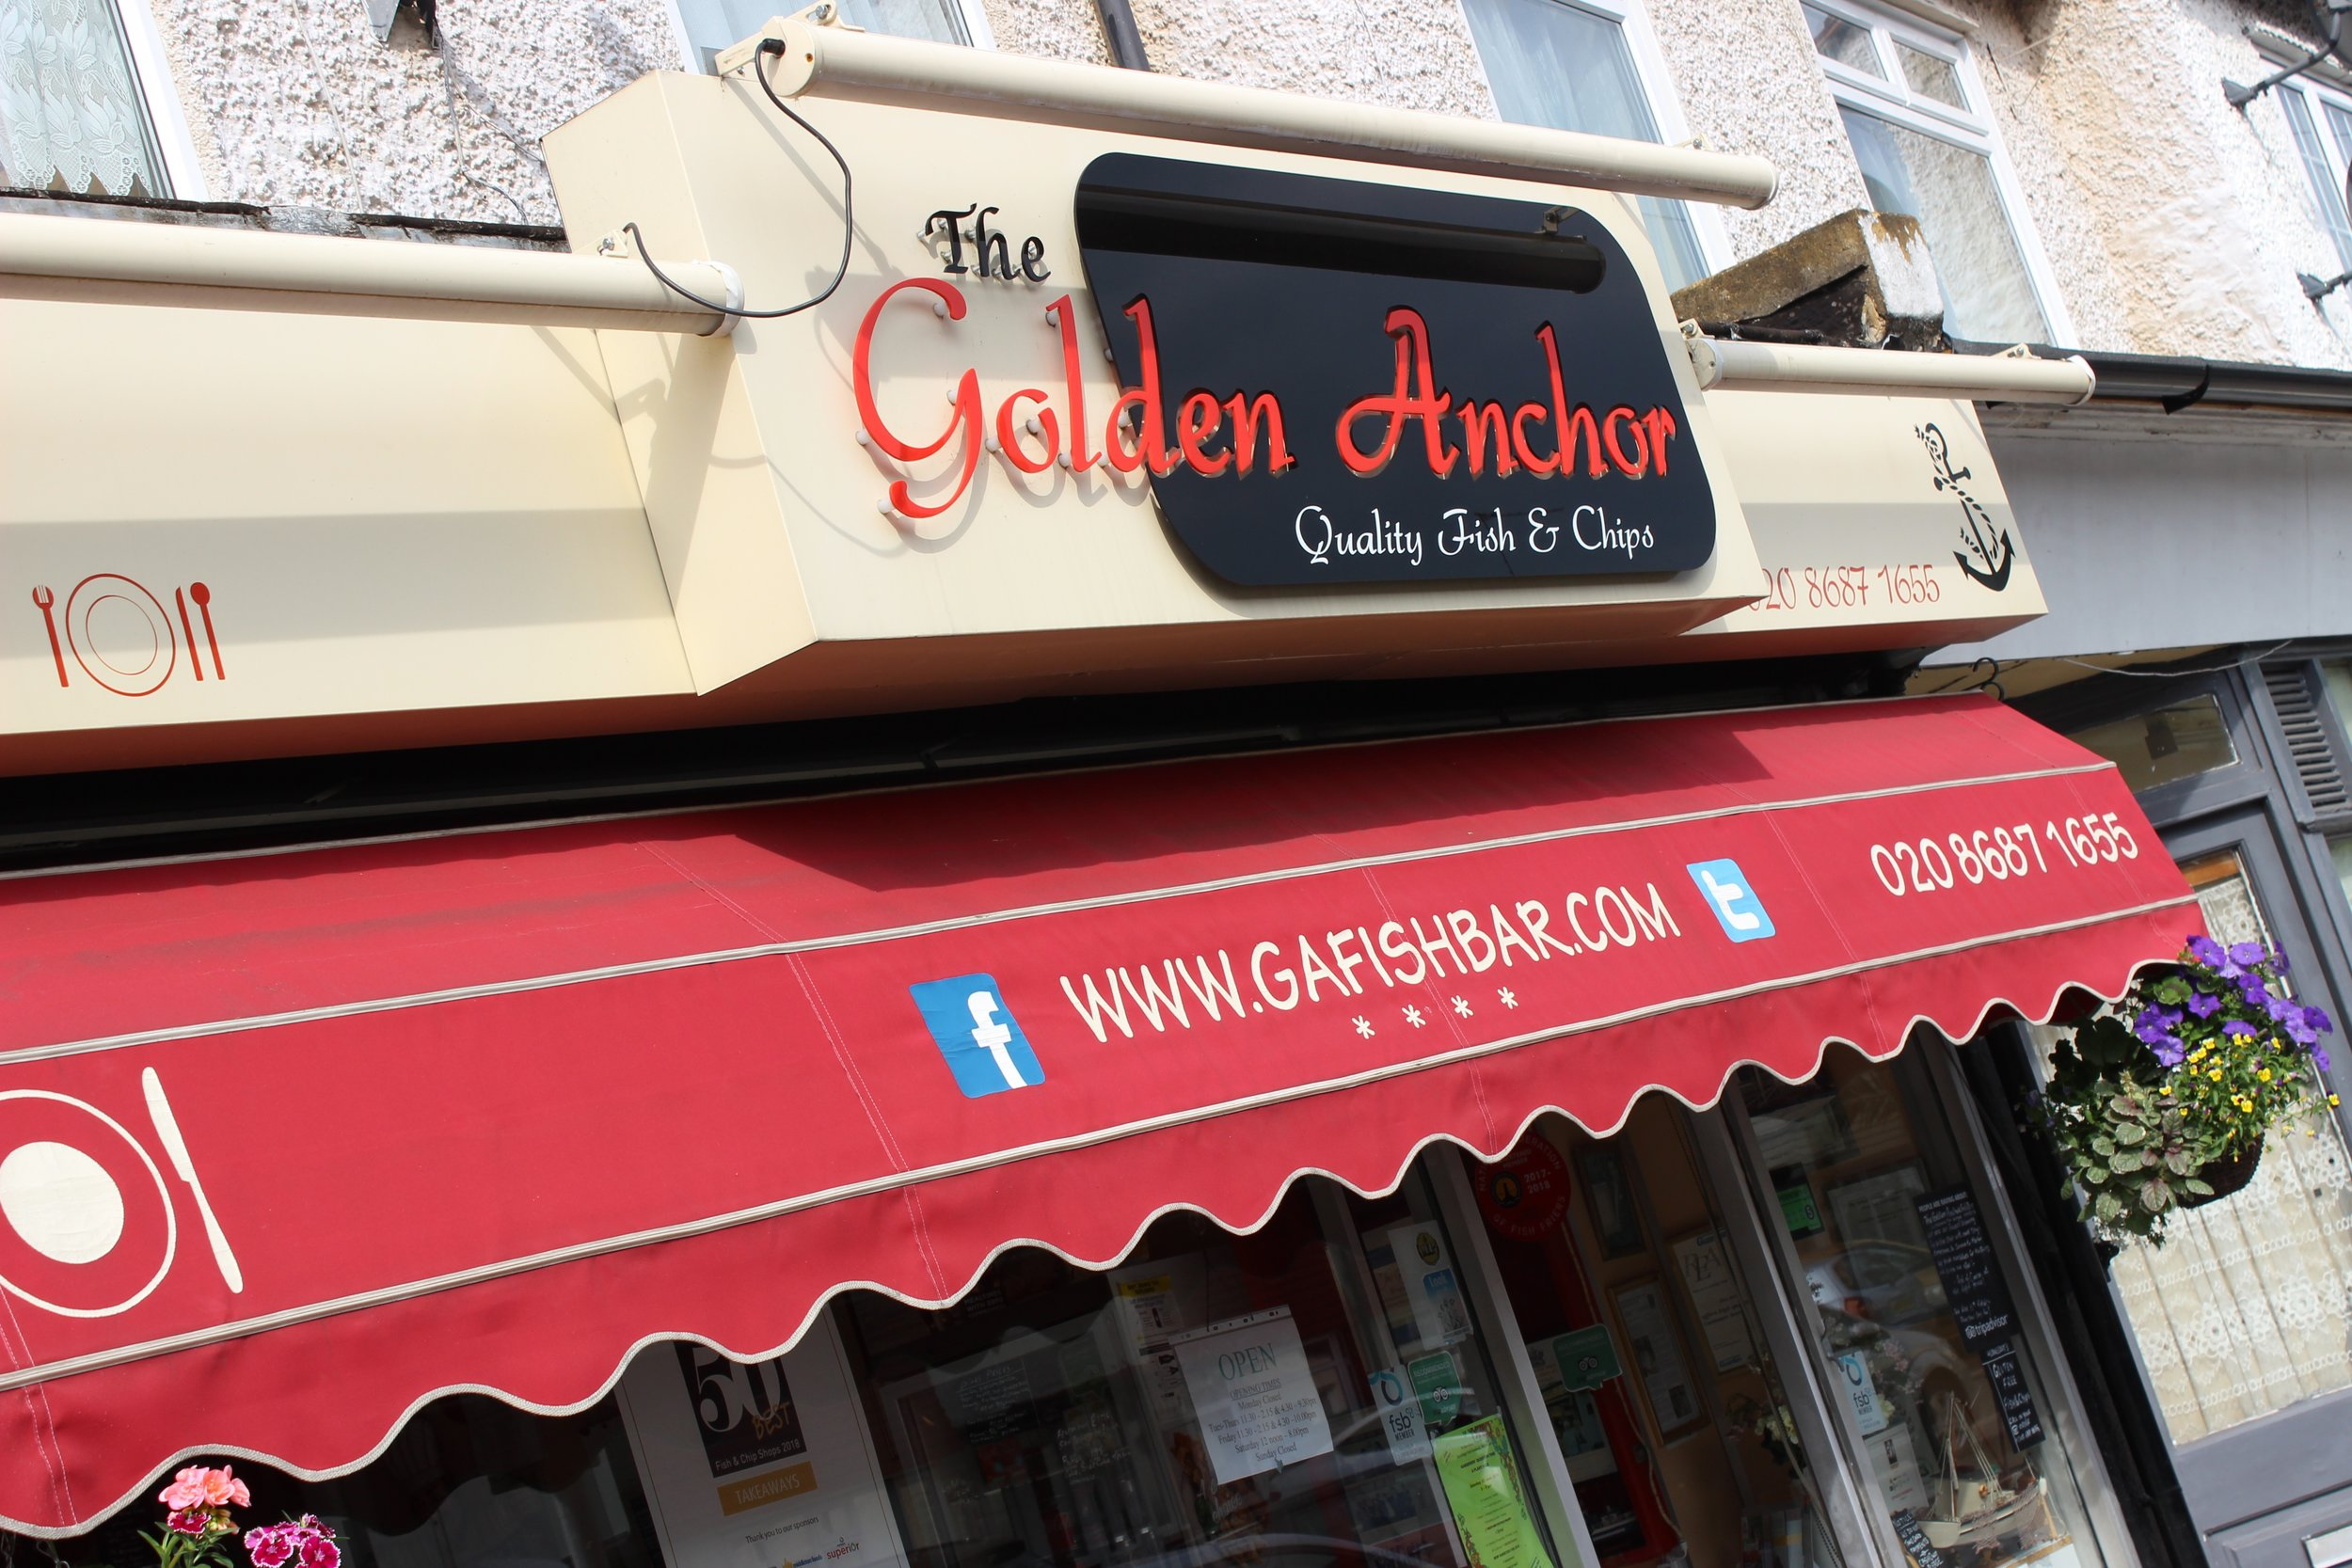 The Golden Anchor Fish & Chip Shop in Mitcham South West London Club Card 4.jpg